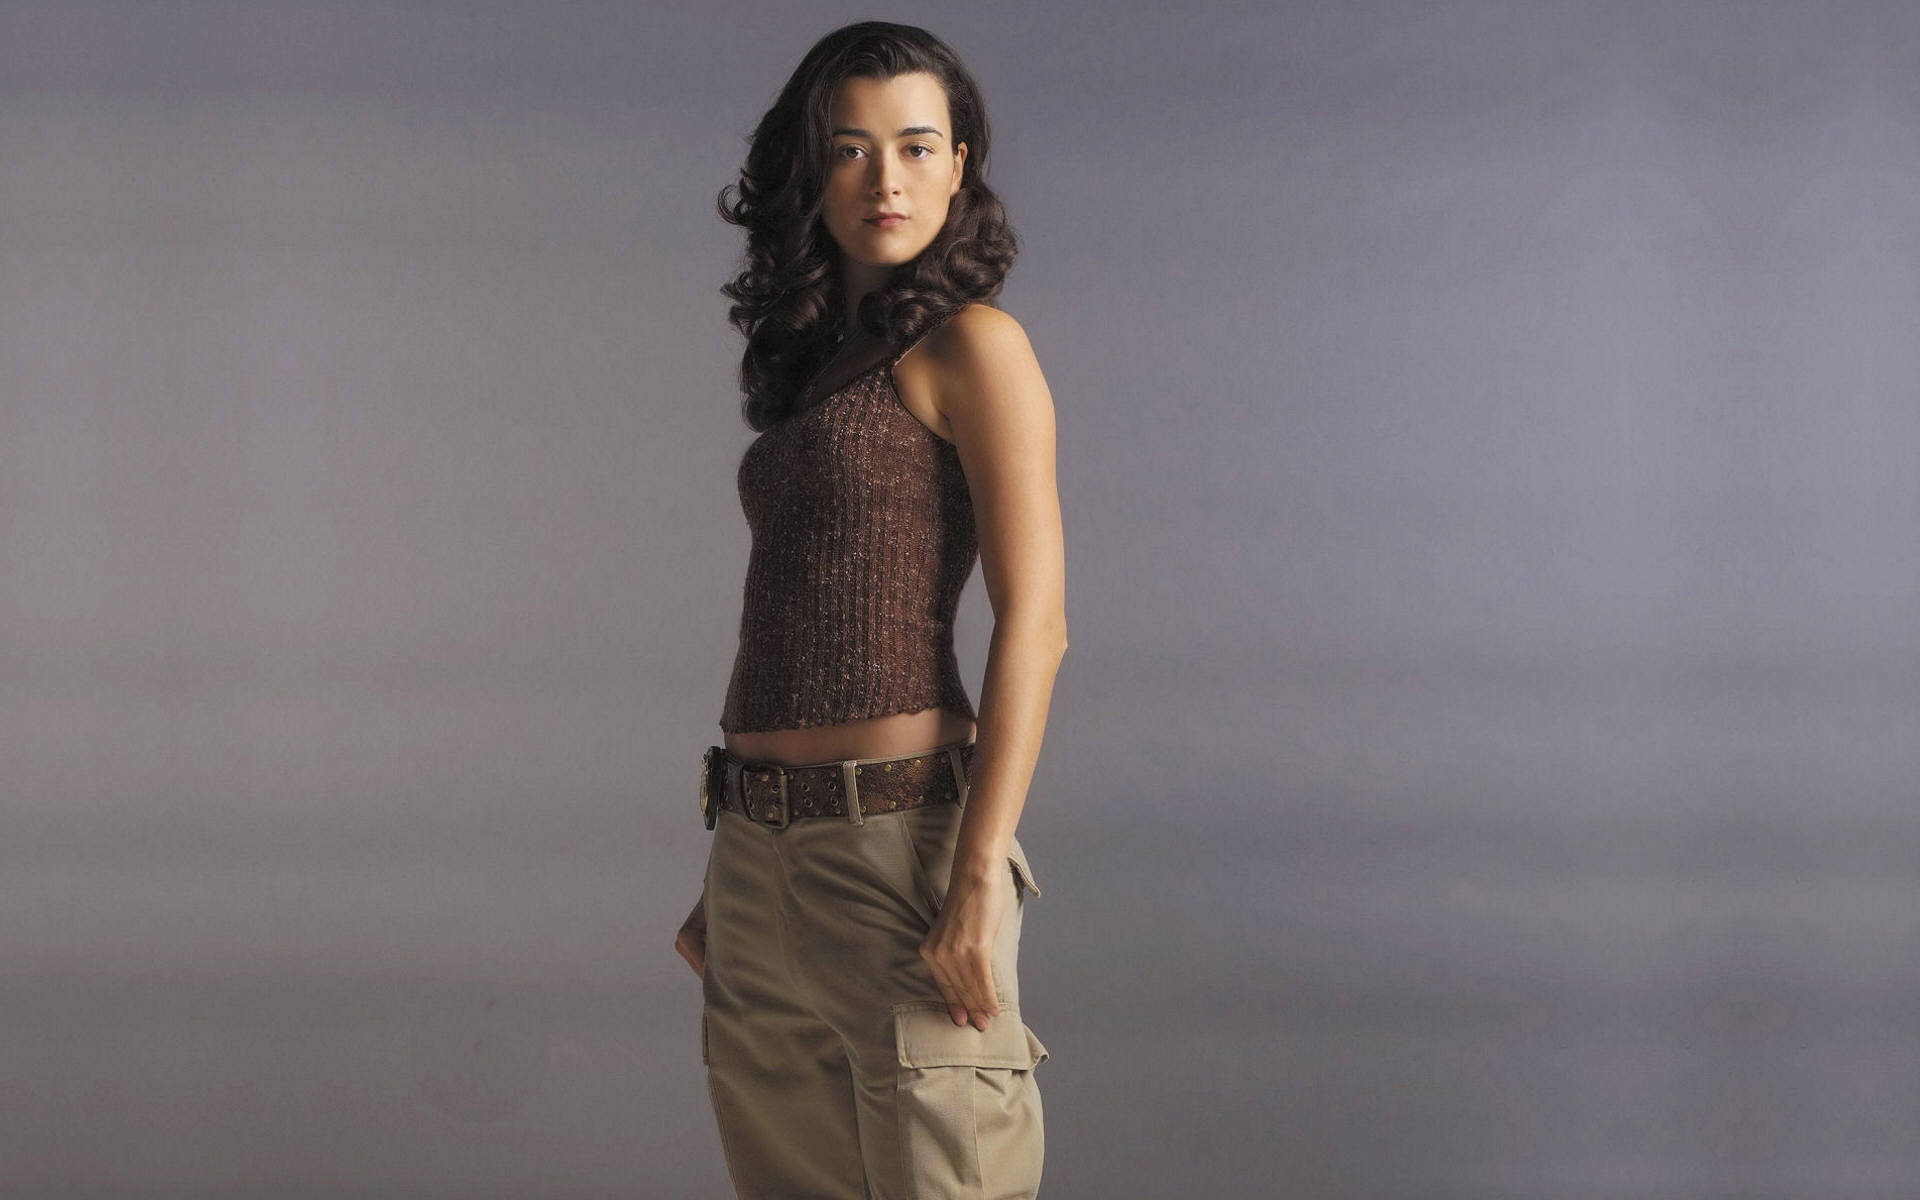 cote de pablo actor cote pablo actori poze hires 11 10 15 456 views